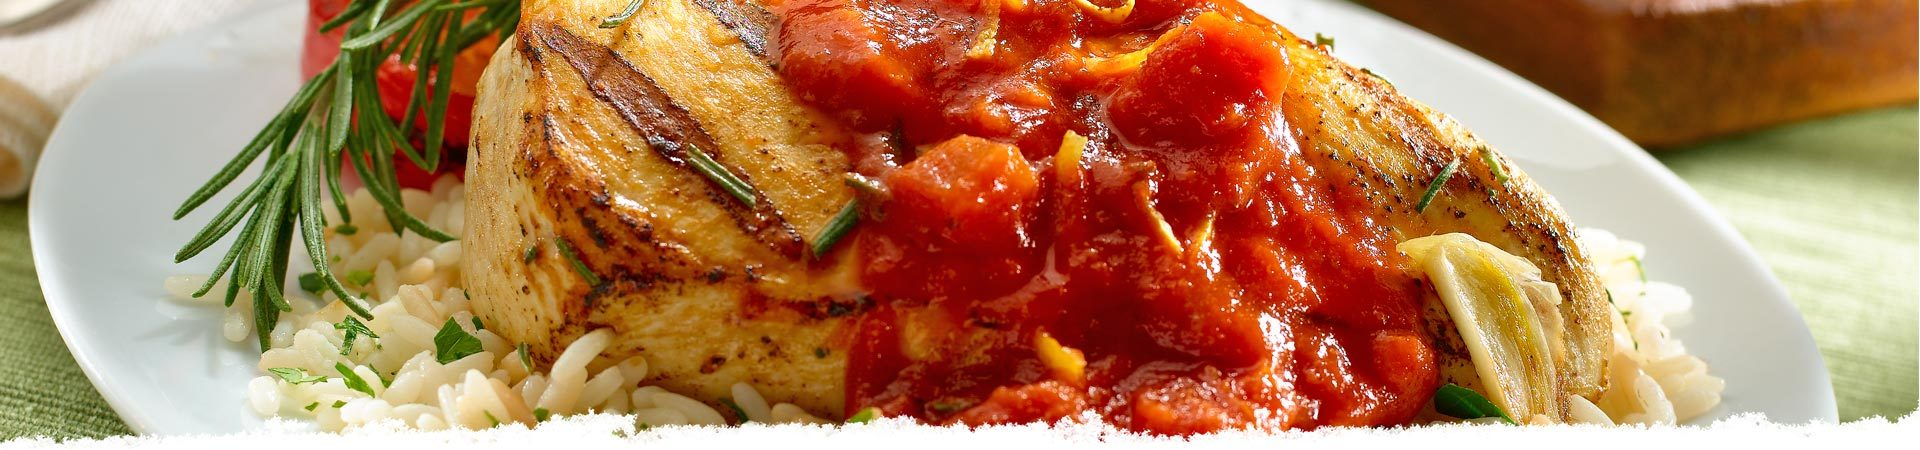 Grilled Chicken with Roasted Tomato Sauce